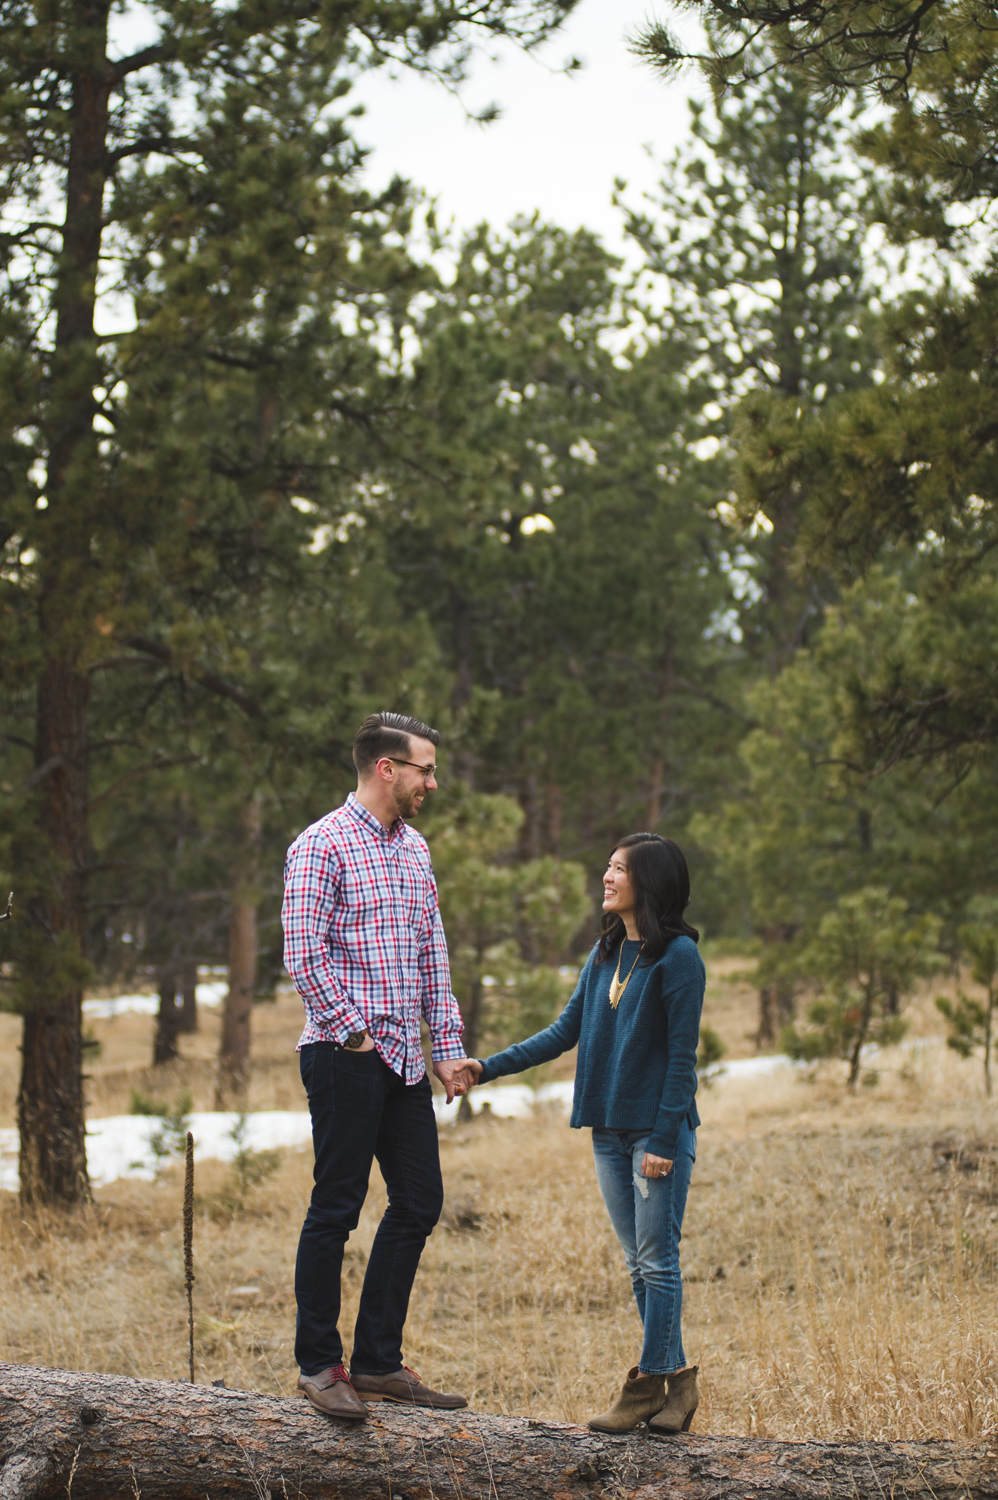 TiffanyandMark_Engaged_0222_squarespace.jpg